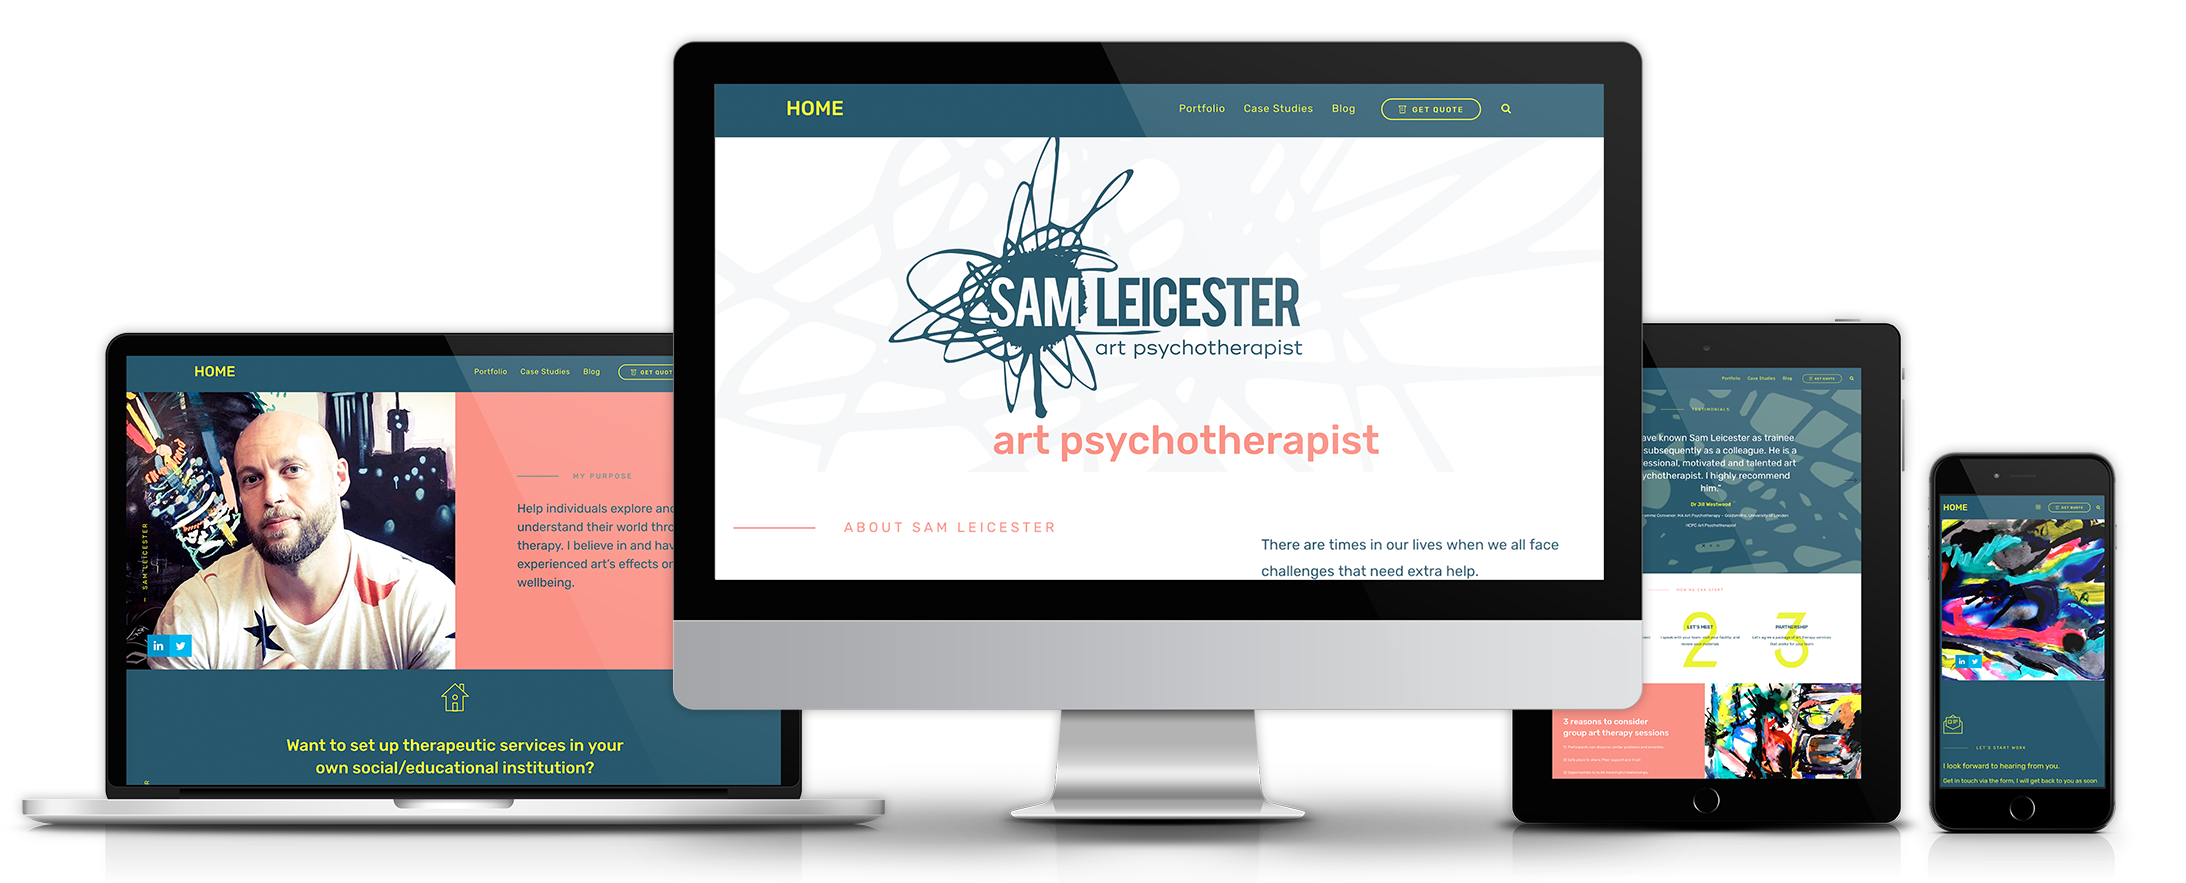 leicester-site mockup.png